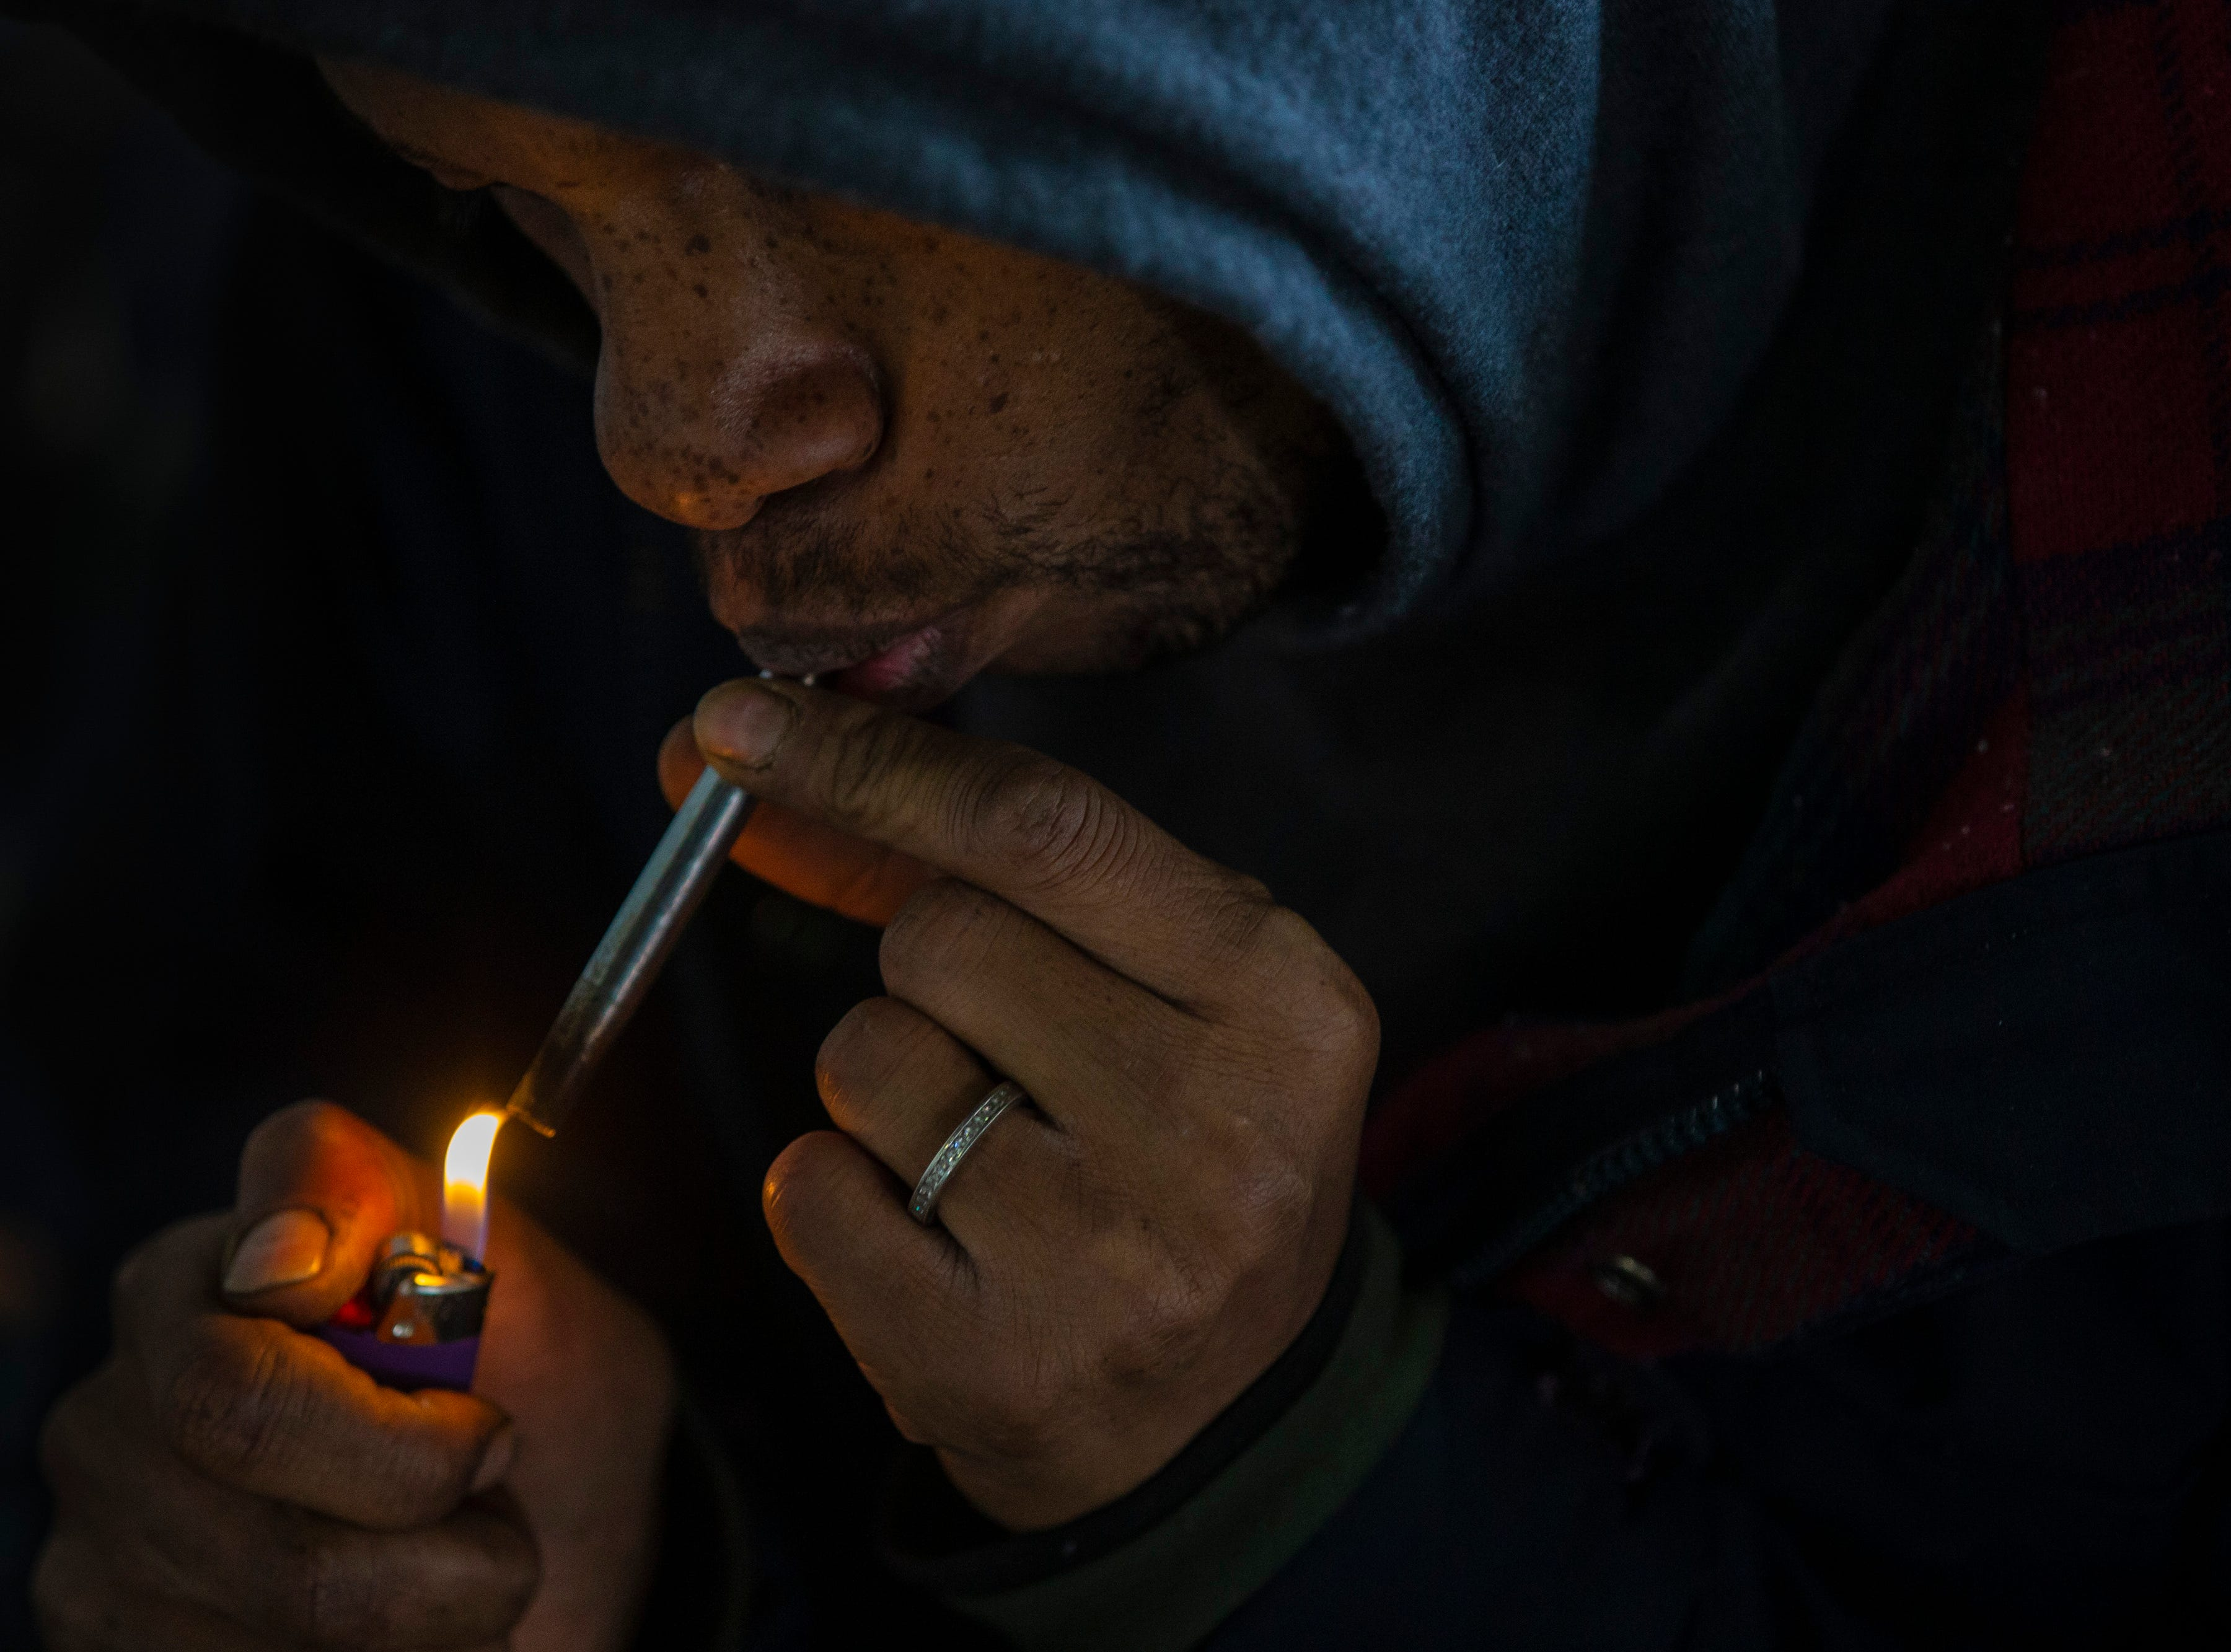 A homeless man uses a metal pipe to smoke at the homeless camp area under the bypasses along East Jefferson Street and Jackson Street in downtown Louisville. March 18, 2019